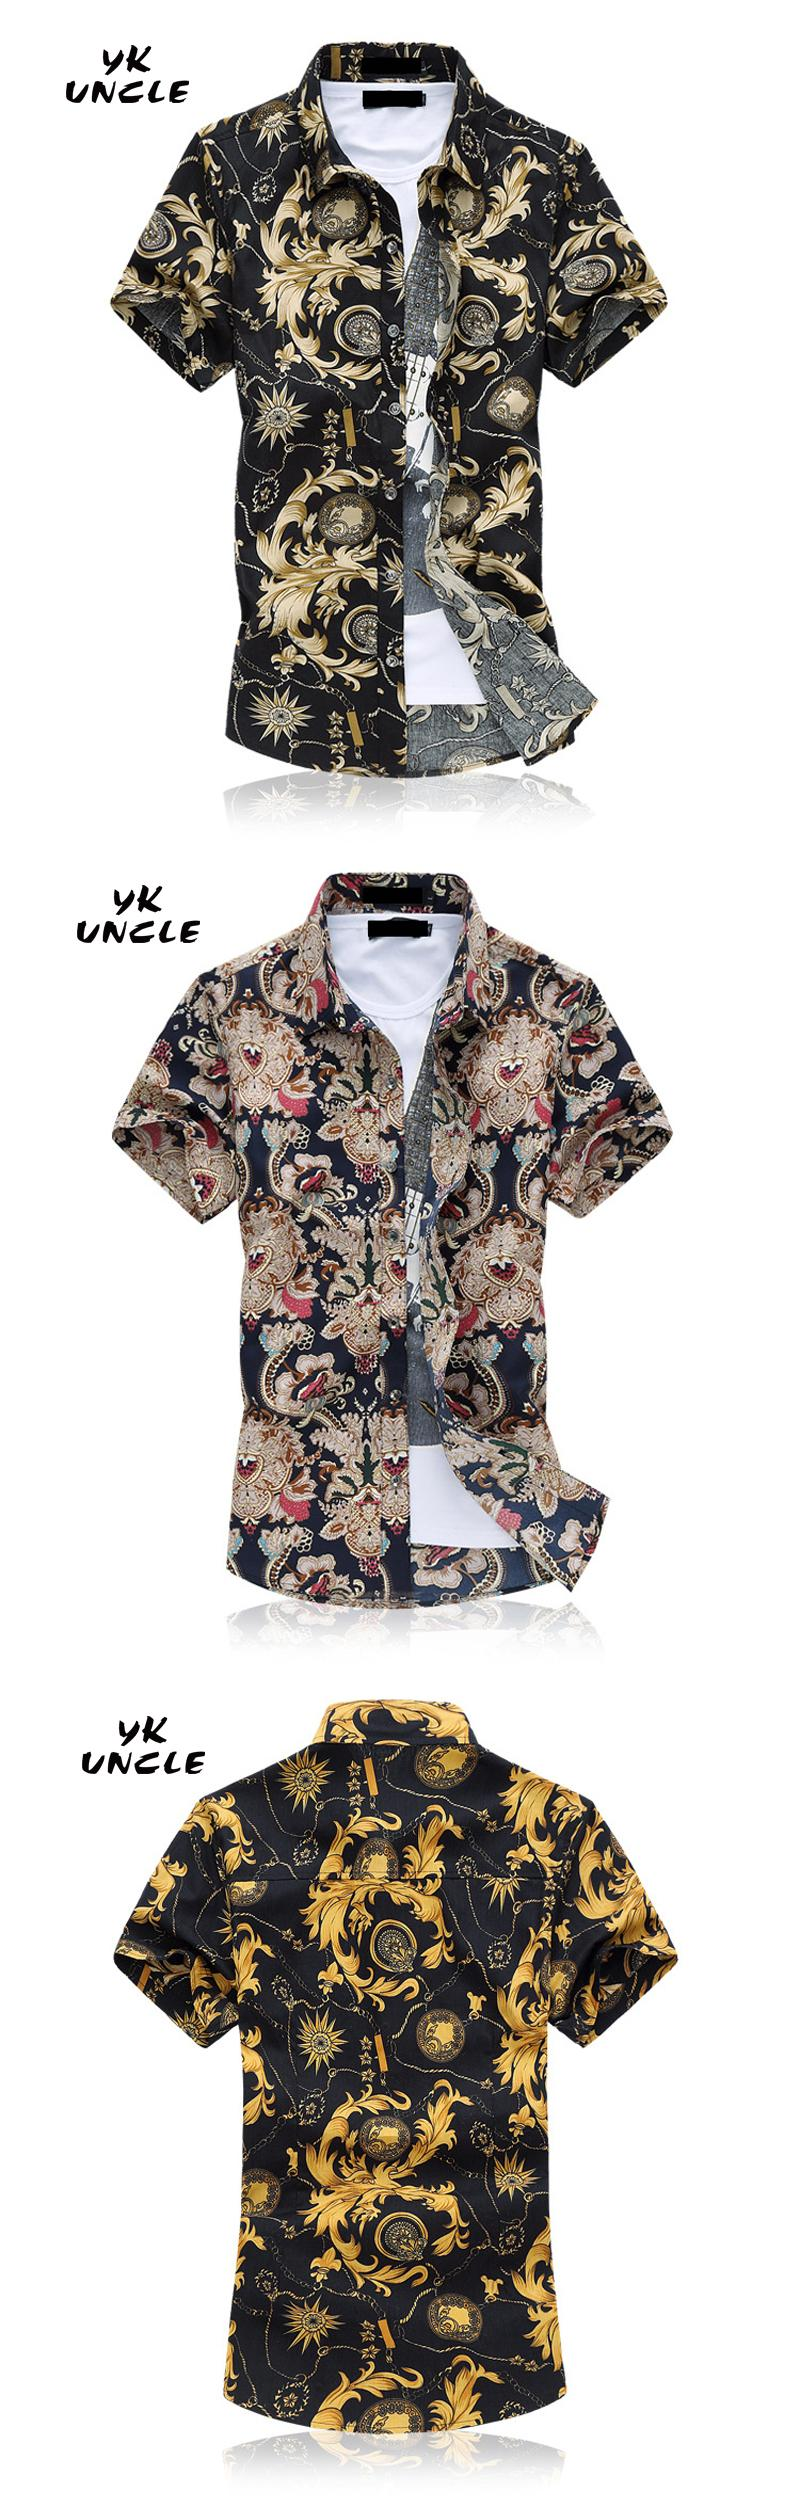 eb1f552d 2016 Floral Printed Flower Men Shirts Short Sleeve Fashion Casual Chemise  Homme Camisa Masculina Plus Size M 6XL,YK UNCLE-in Casual Shirts from Men's  ...